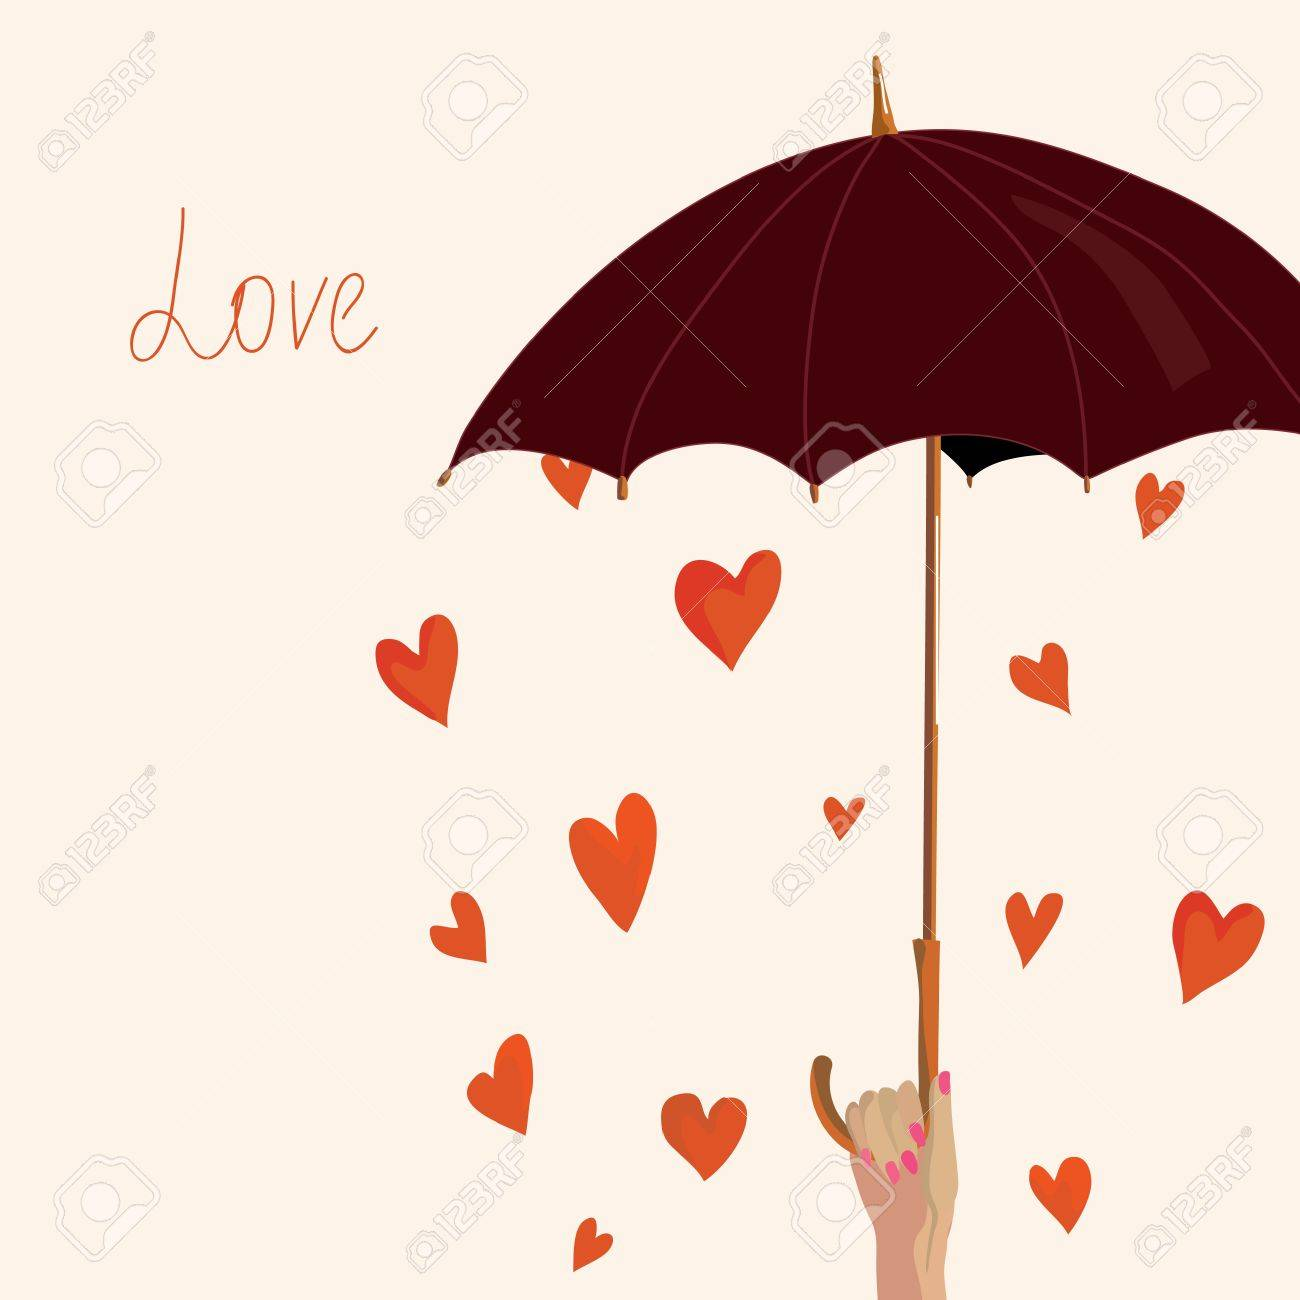 Valentine card with hearts and umbrella - 16824431